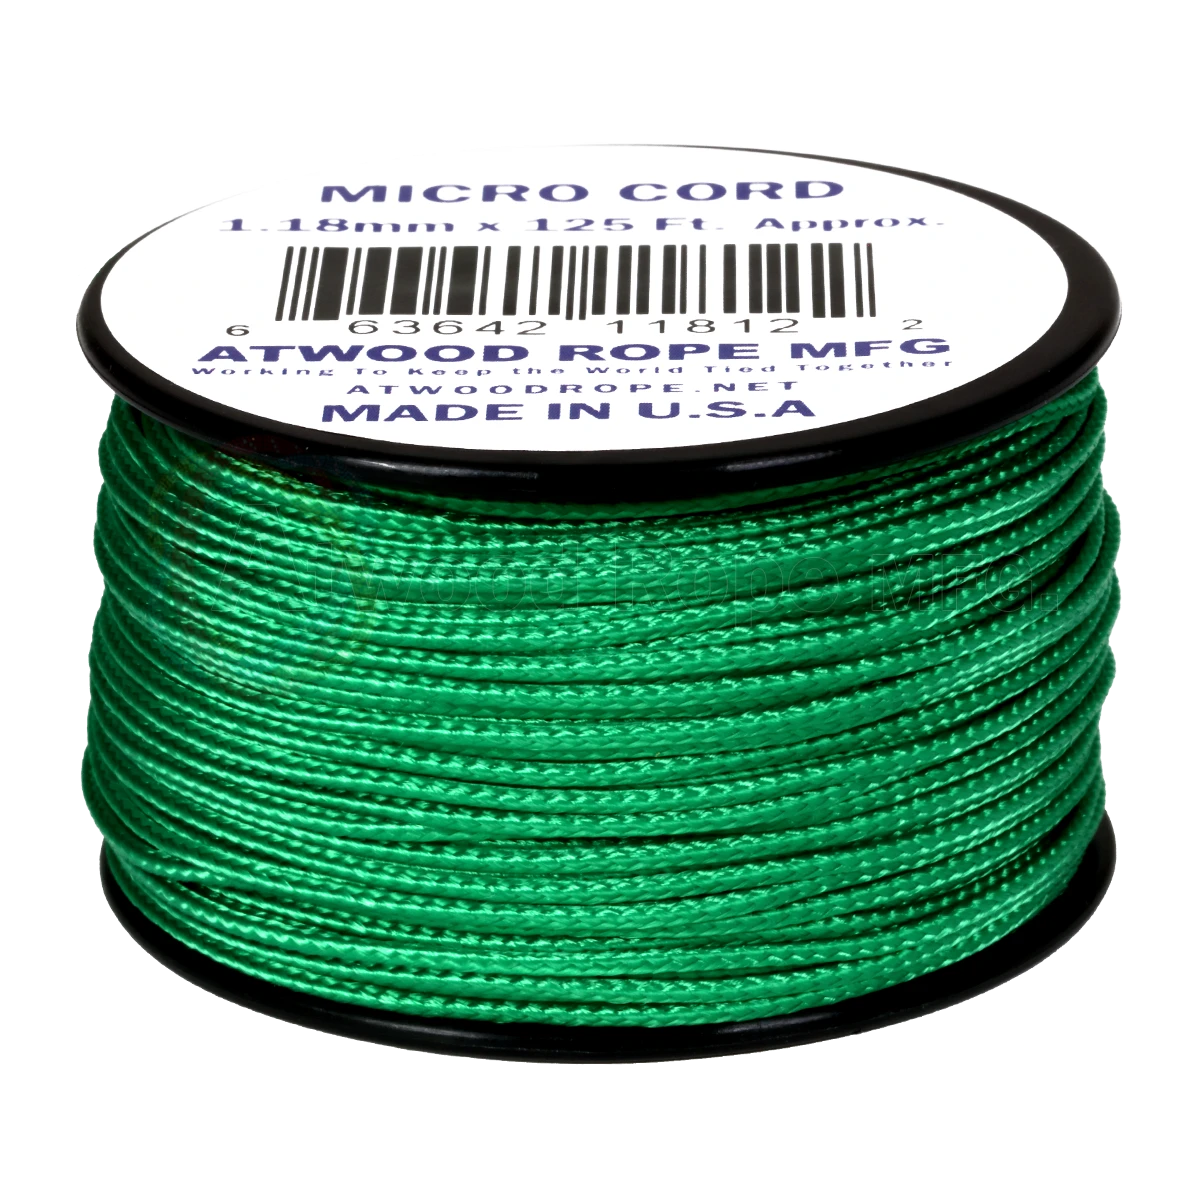 Dây Micro Cord 1.18mm – 100ft – Green